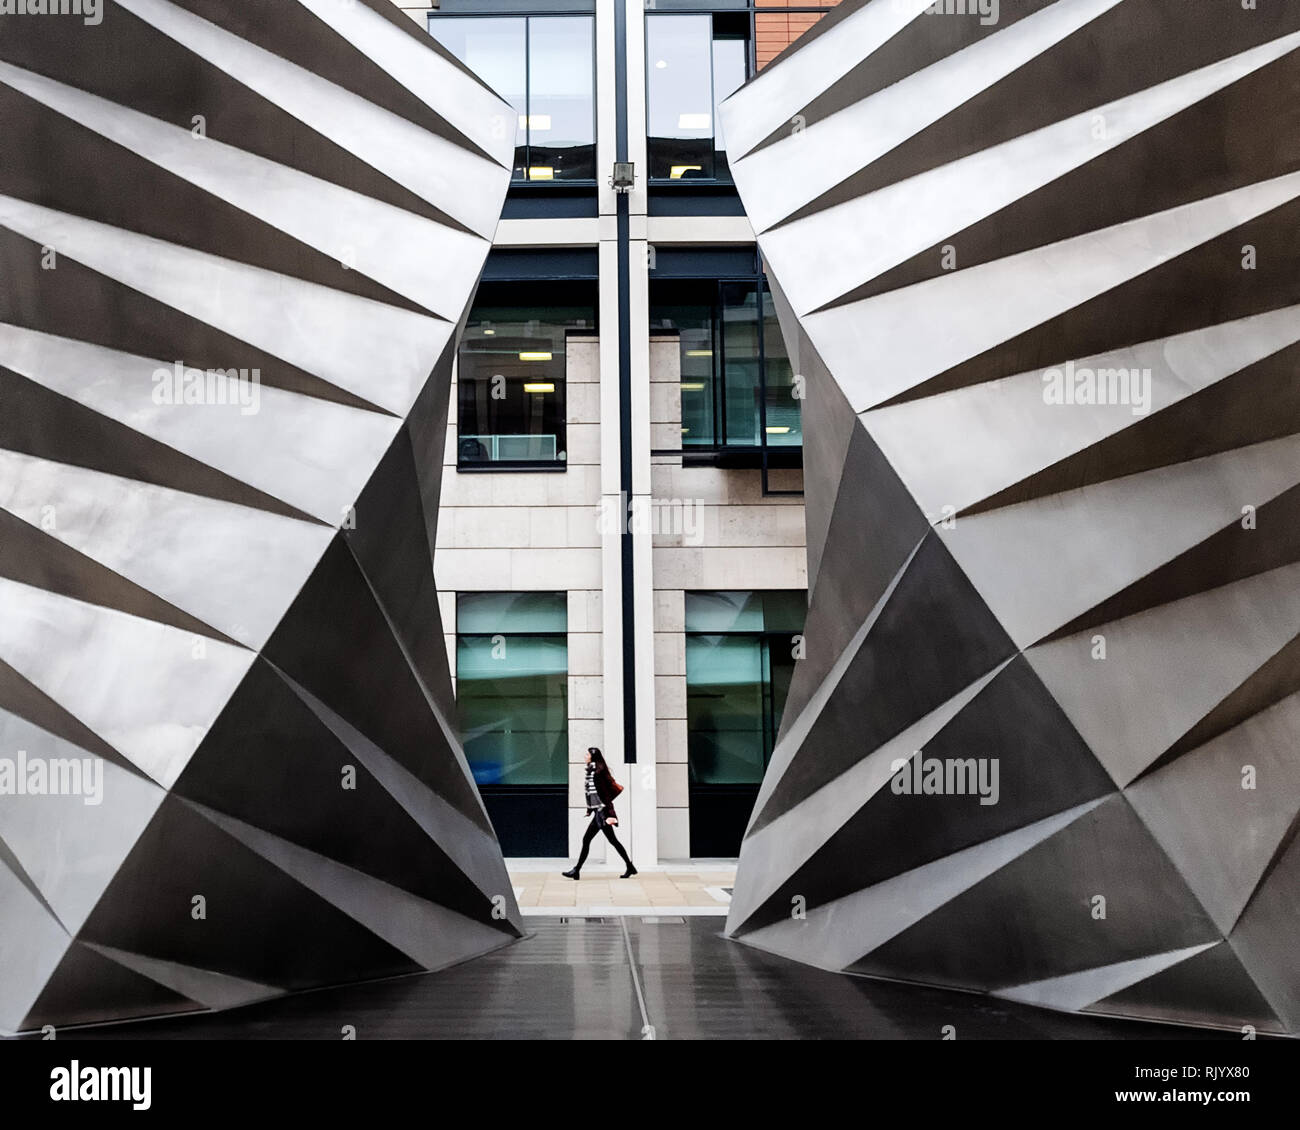 A lone figure can be seen walking past the two vents in Paternoster Square, Paternoster Row, London, EC4M England. Known as the Angel's Wings. - Stock Image